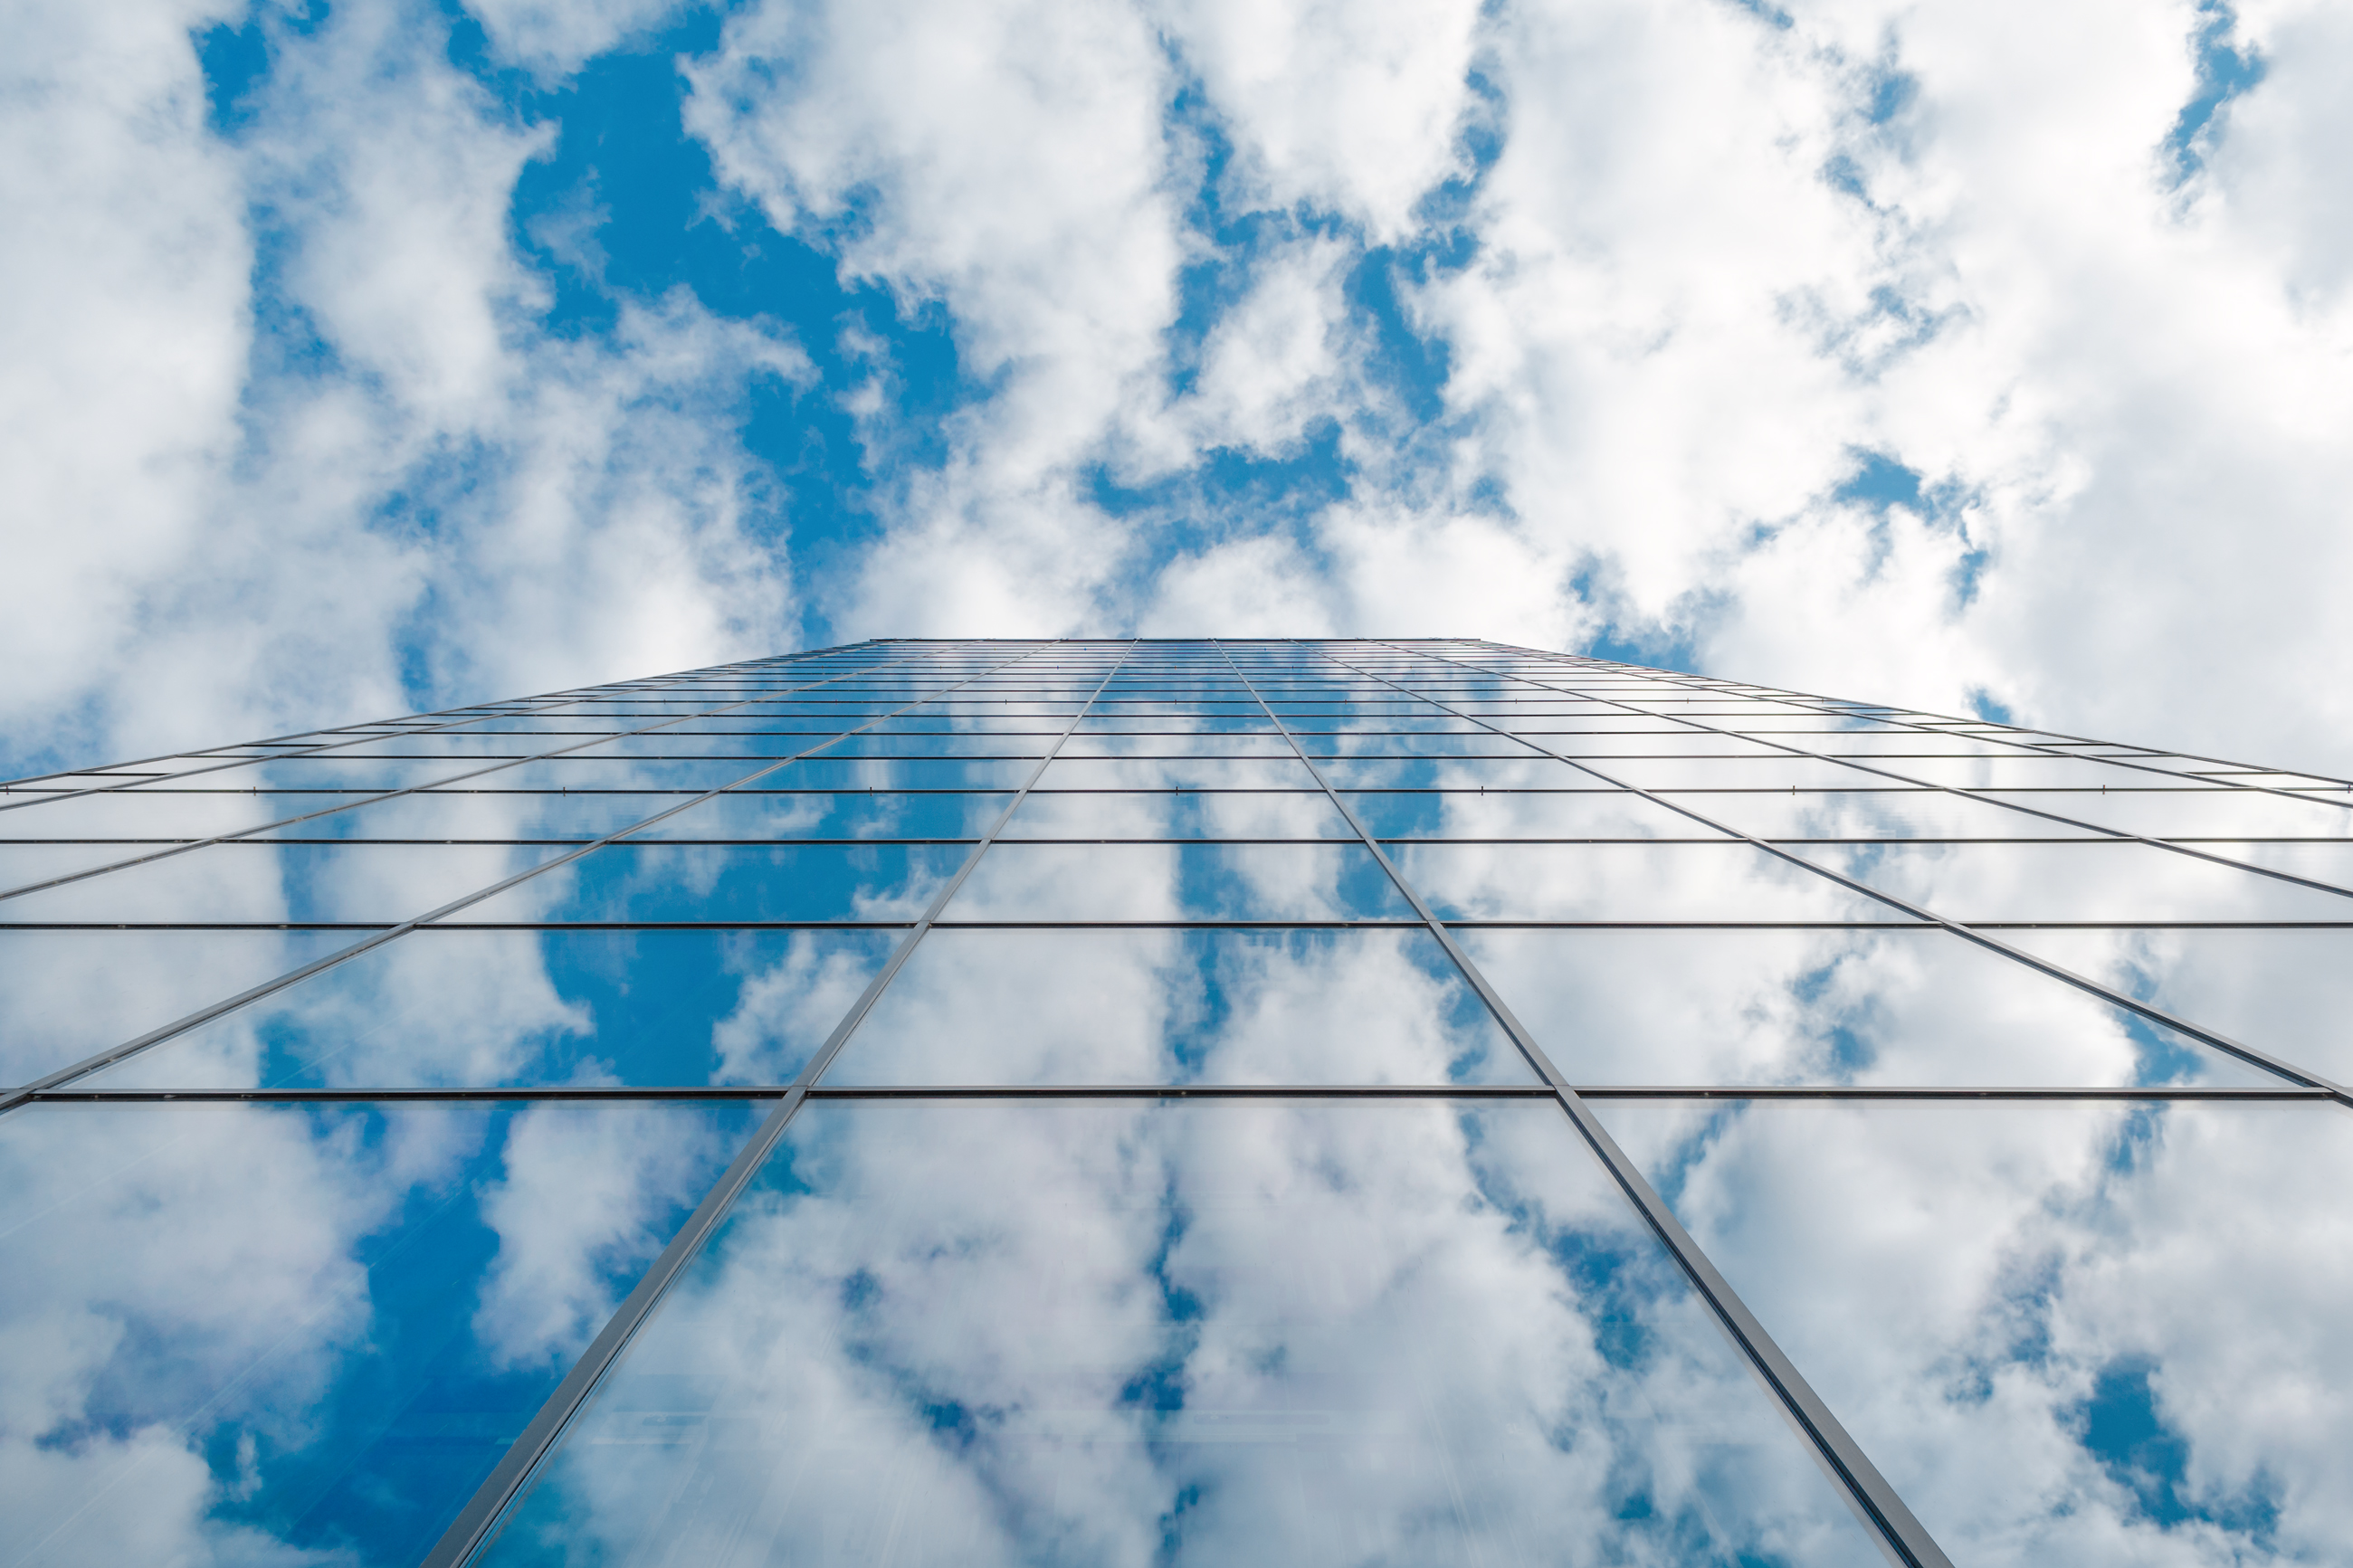 modern business high rise building and blue sky with clouds, Dusseldorf, Germany